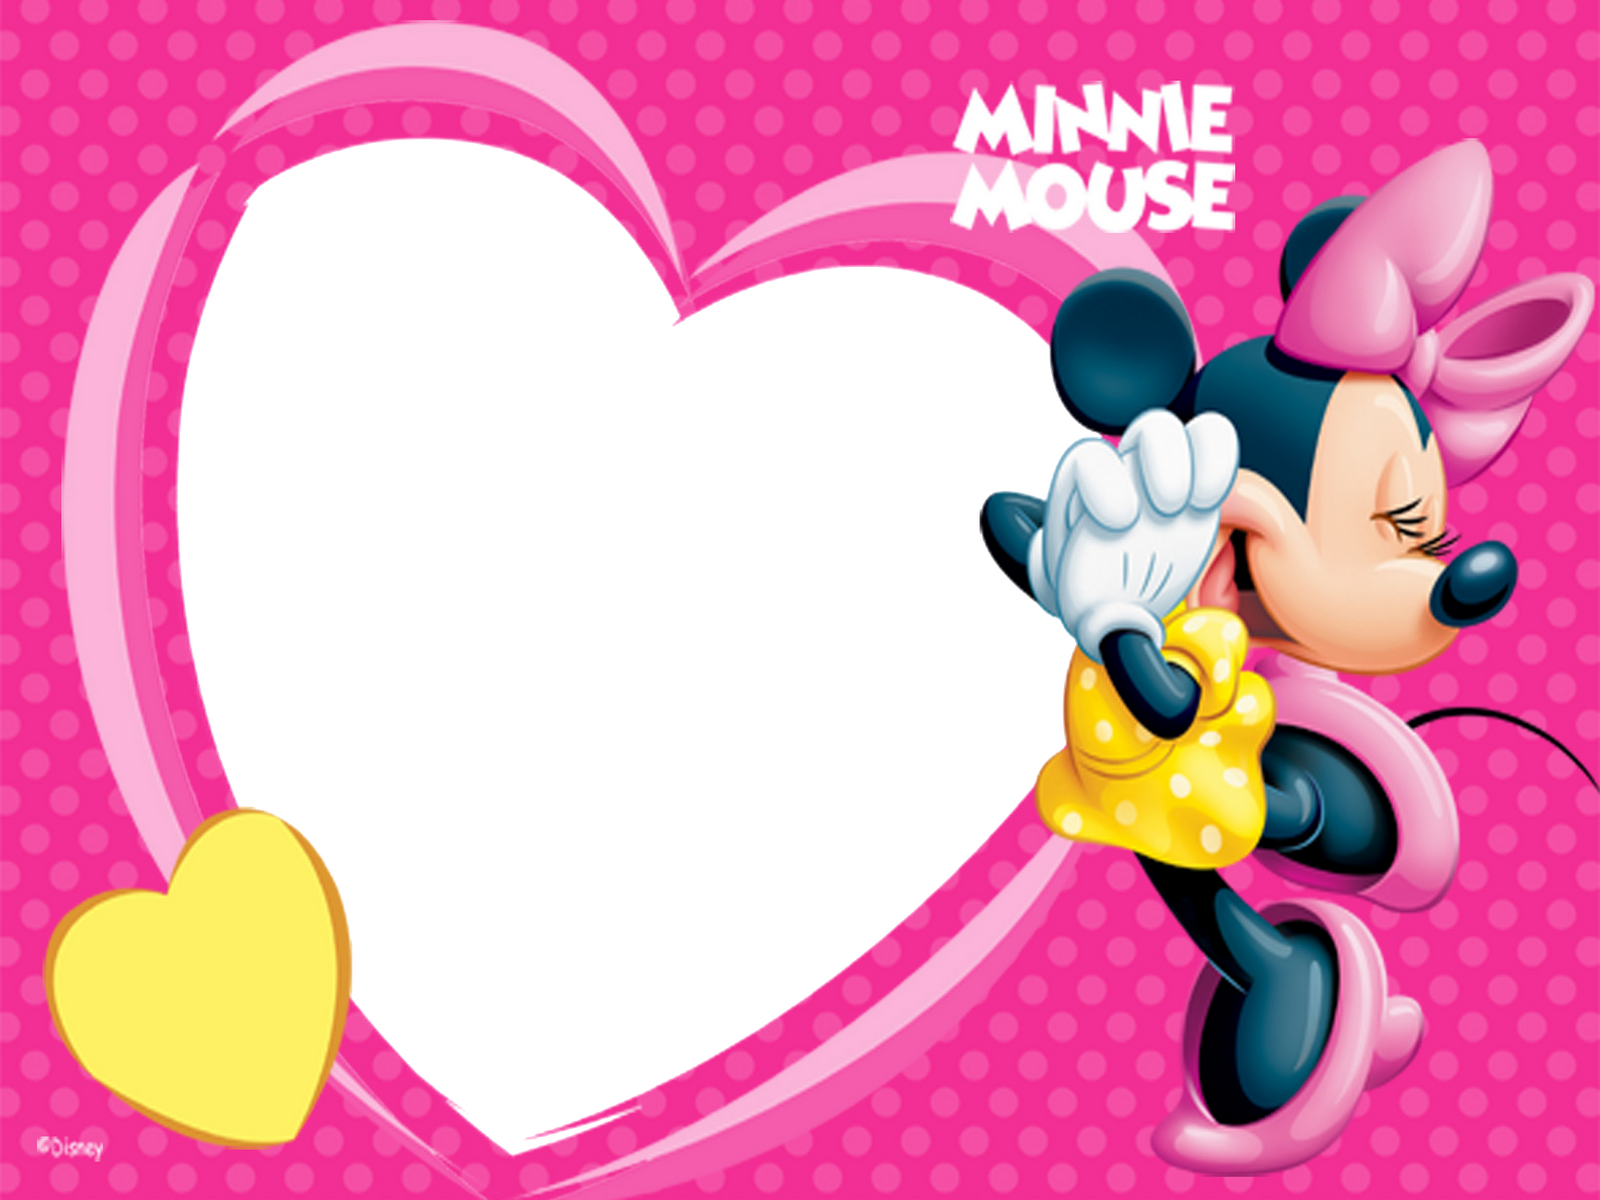 Minnie Mouse Wallpaper HD - WallpaperSafari